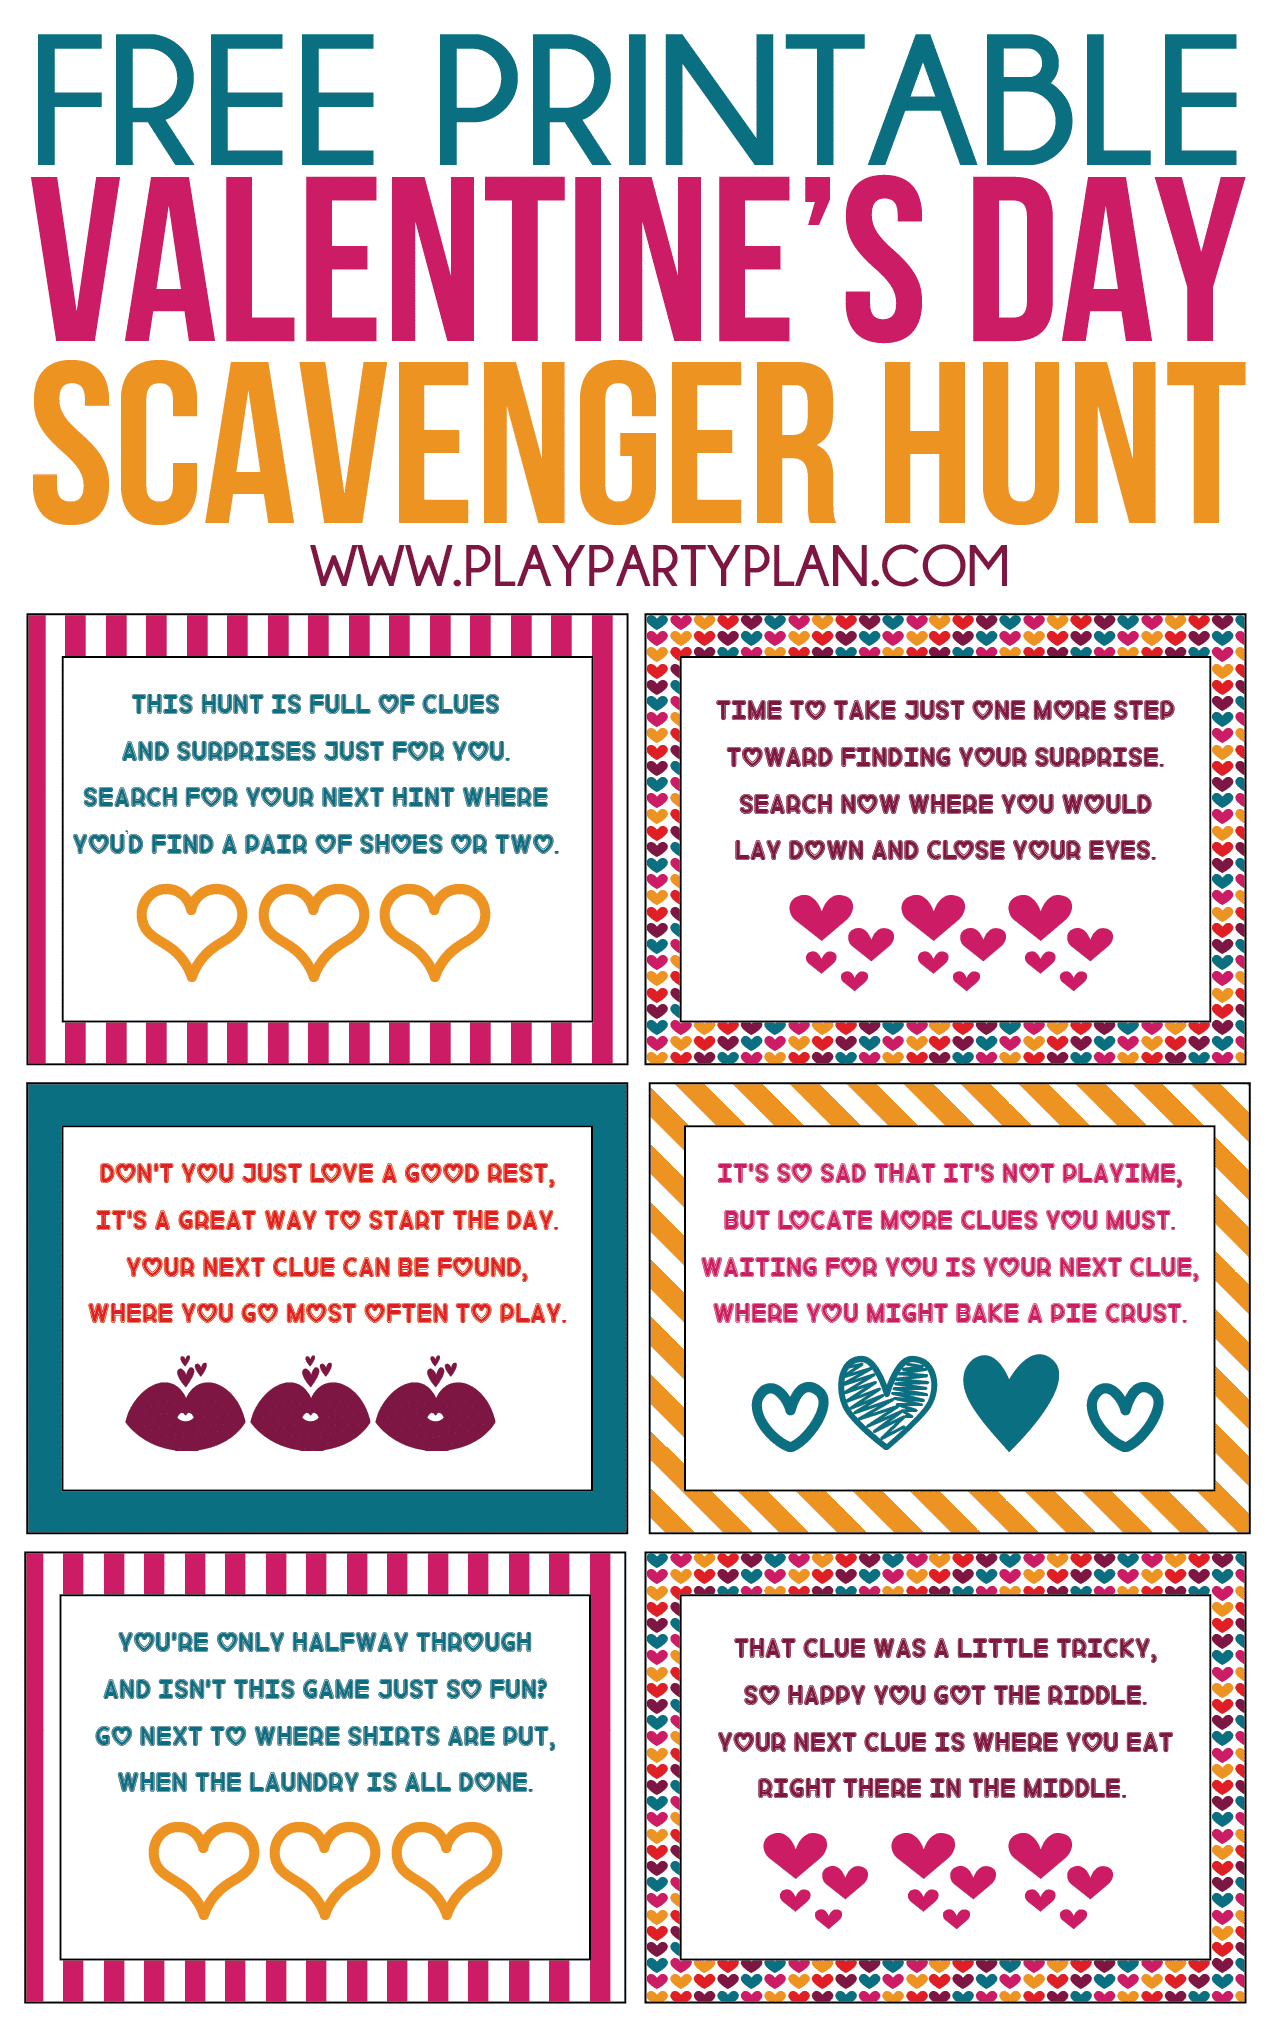 photo relating to Printable Scavenger Hunt for Kids named Cost-free Printable Valentines Working day Scavenger Hunt Youngsters Grownups